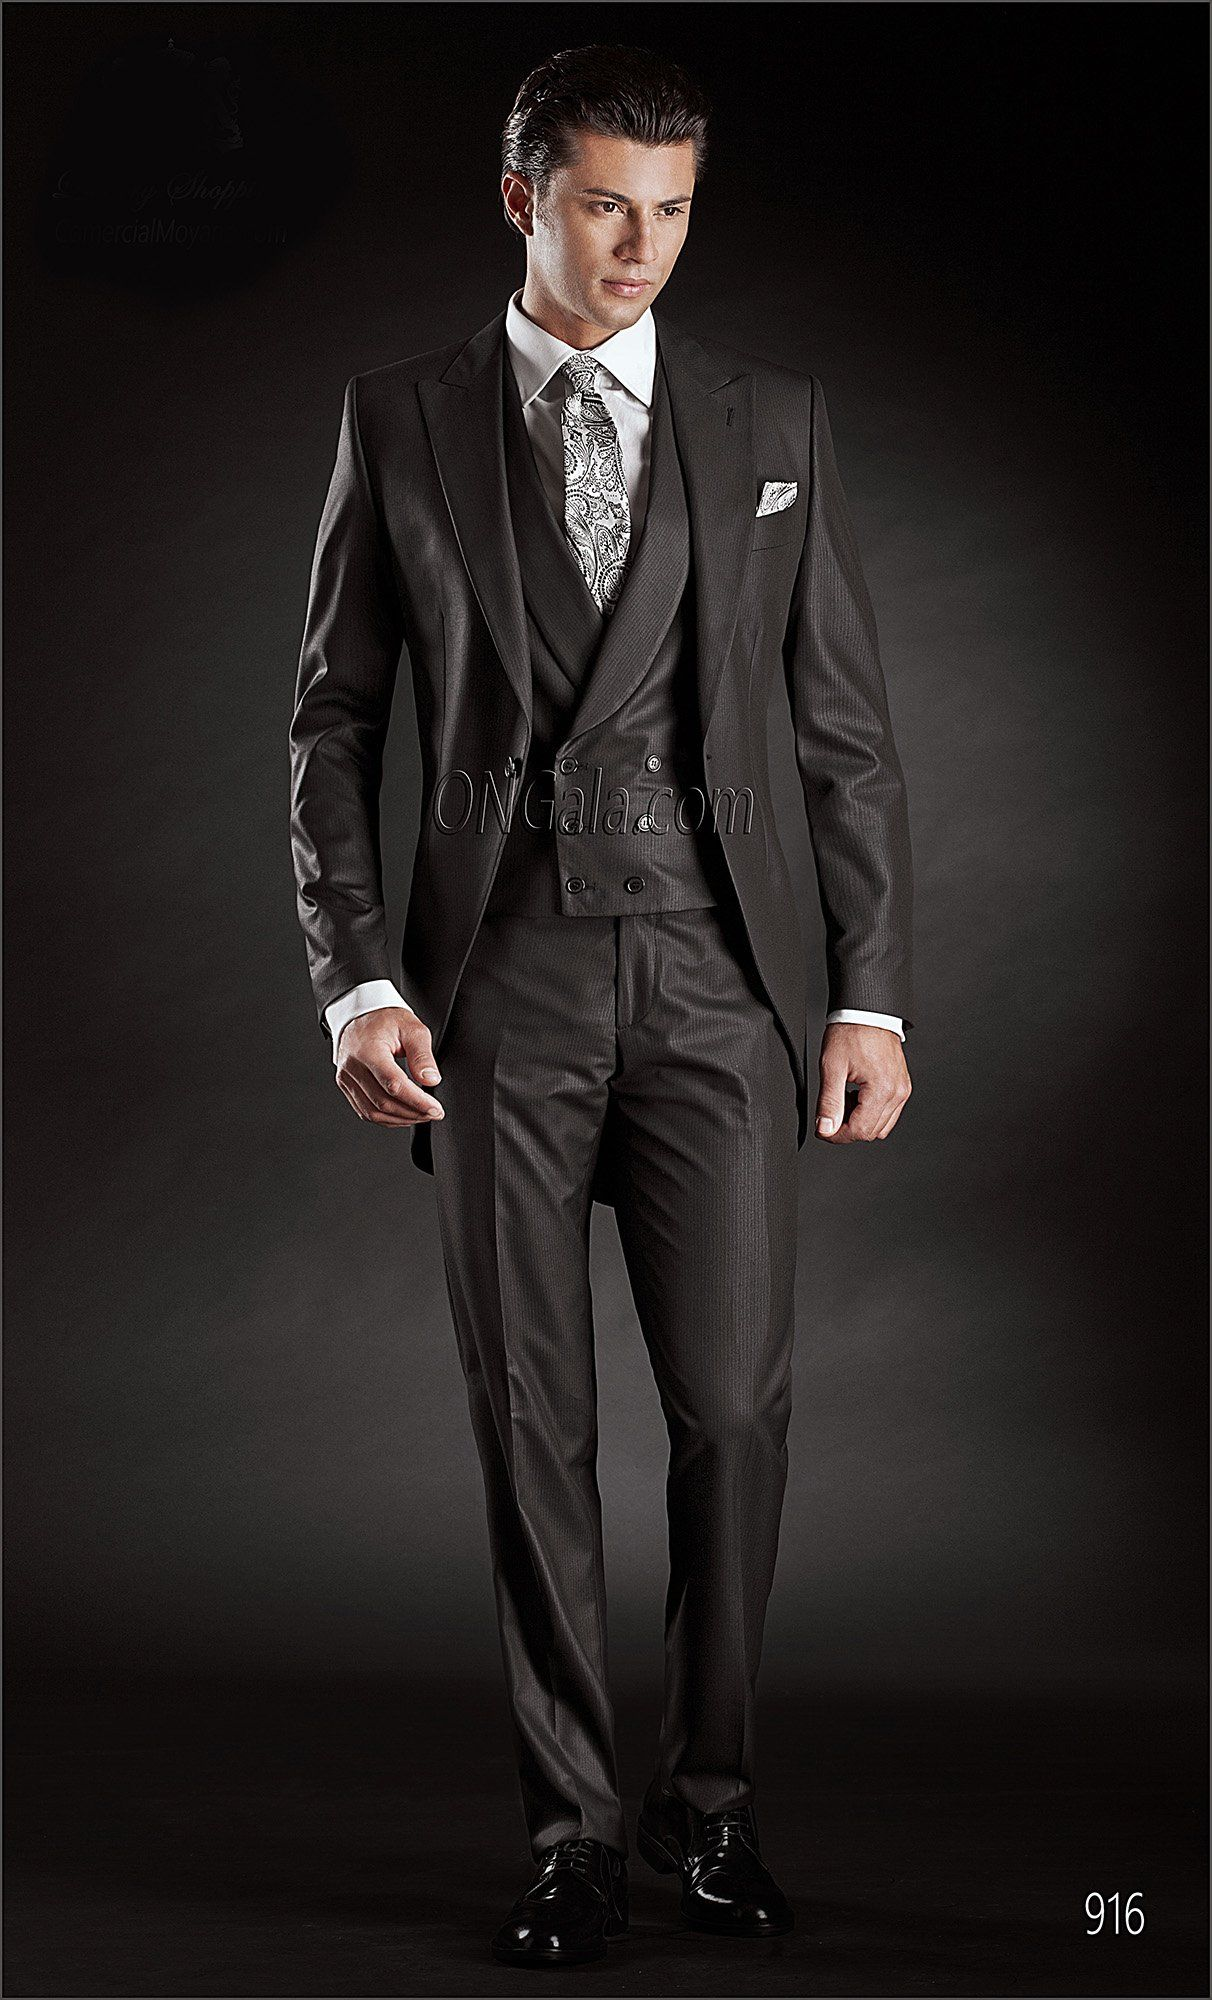 "Abito Sposo demi-Tight ""Redingote"" nero Redingote Short-Tailed Suit in Black with Double-Breasted Waistcoat Trajes para novio semilevita ""Redingote"" negro"